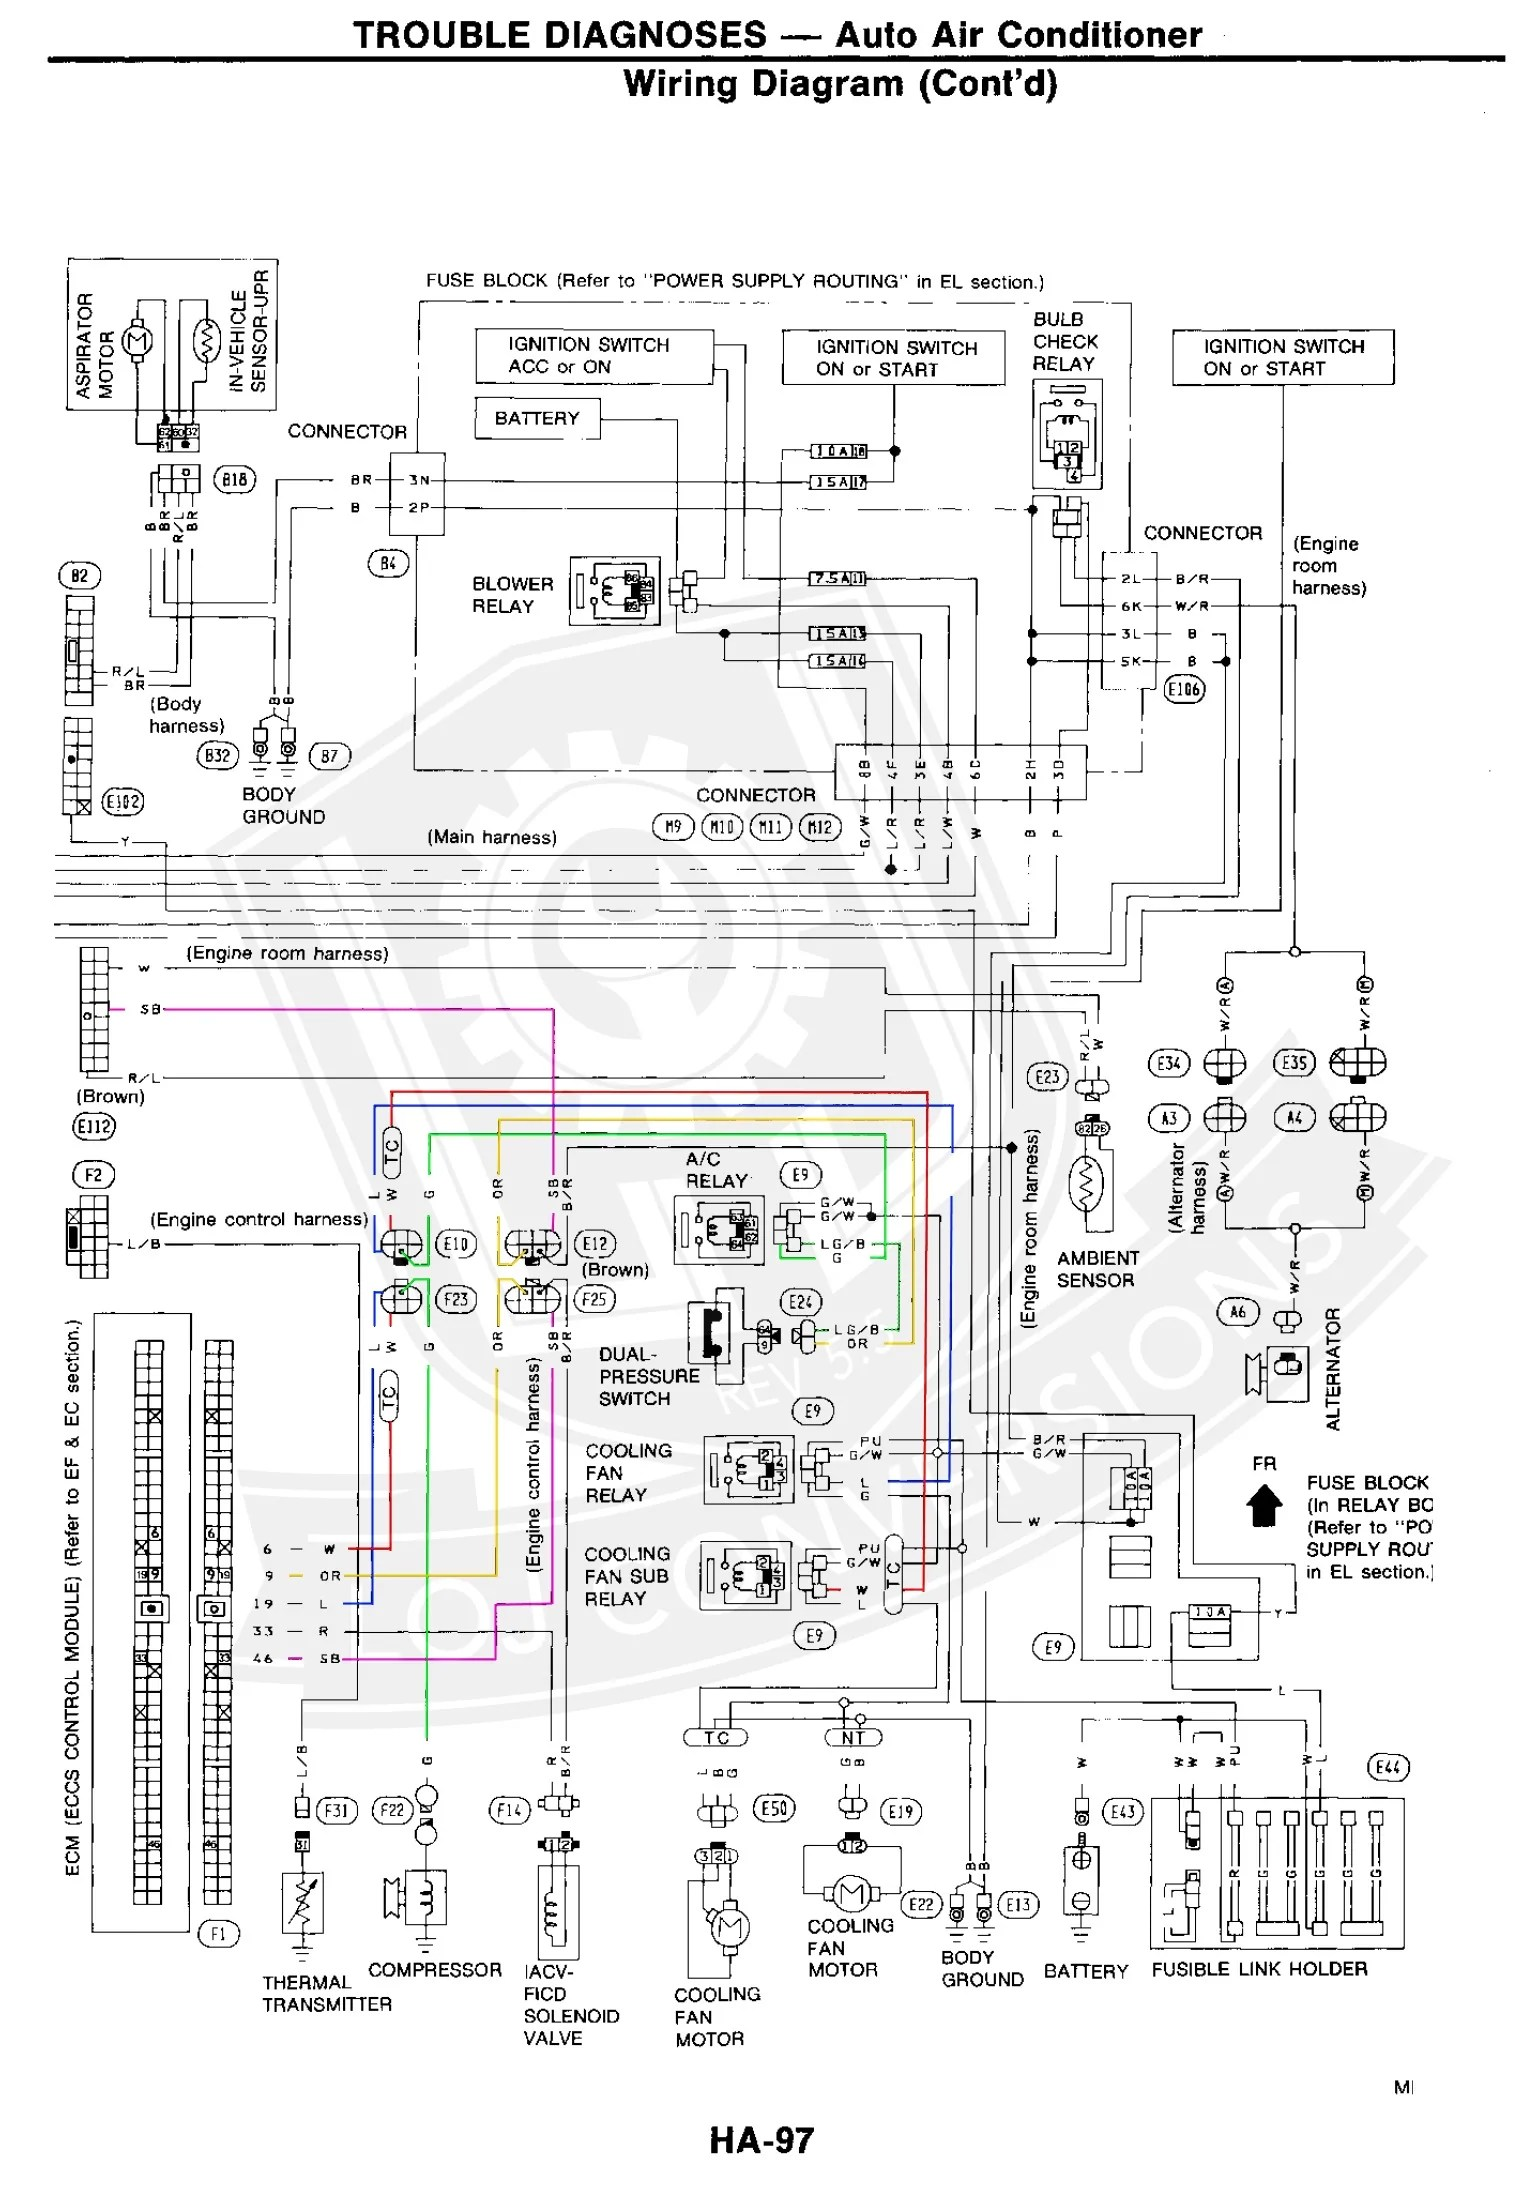 1986 nissan 300zx turbo engine wiring harness 1983 porsche 1991 Nissan  300ZX Wiring -Diagram 1991 Nissan 300ZX Wiring -Diagram